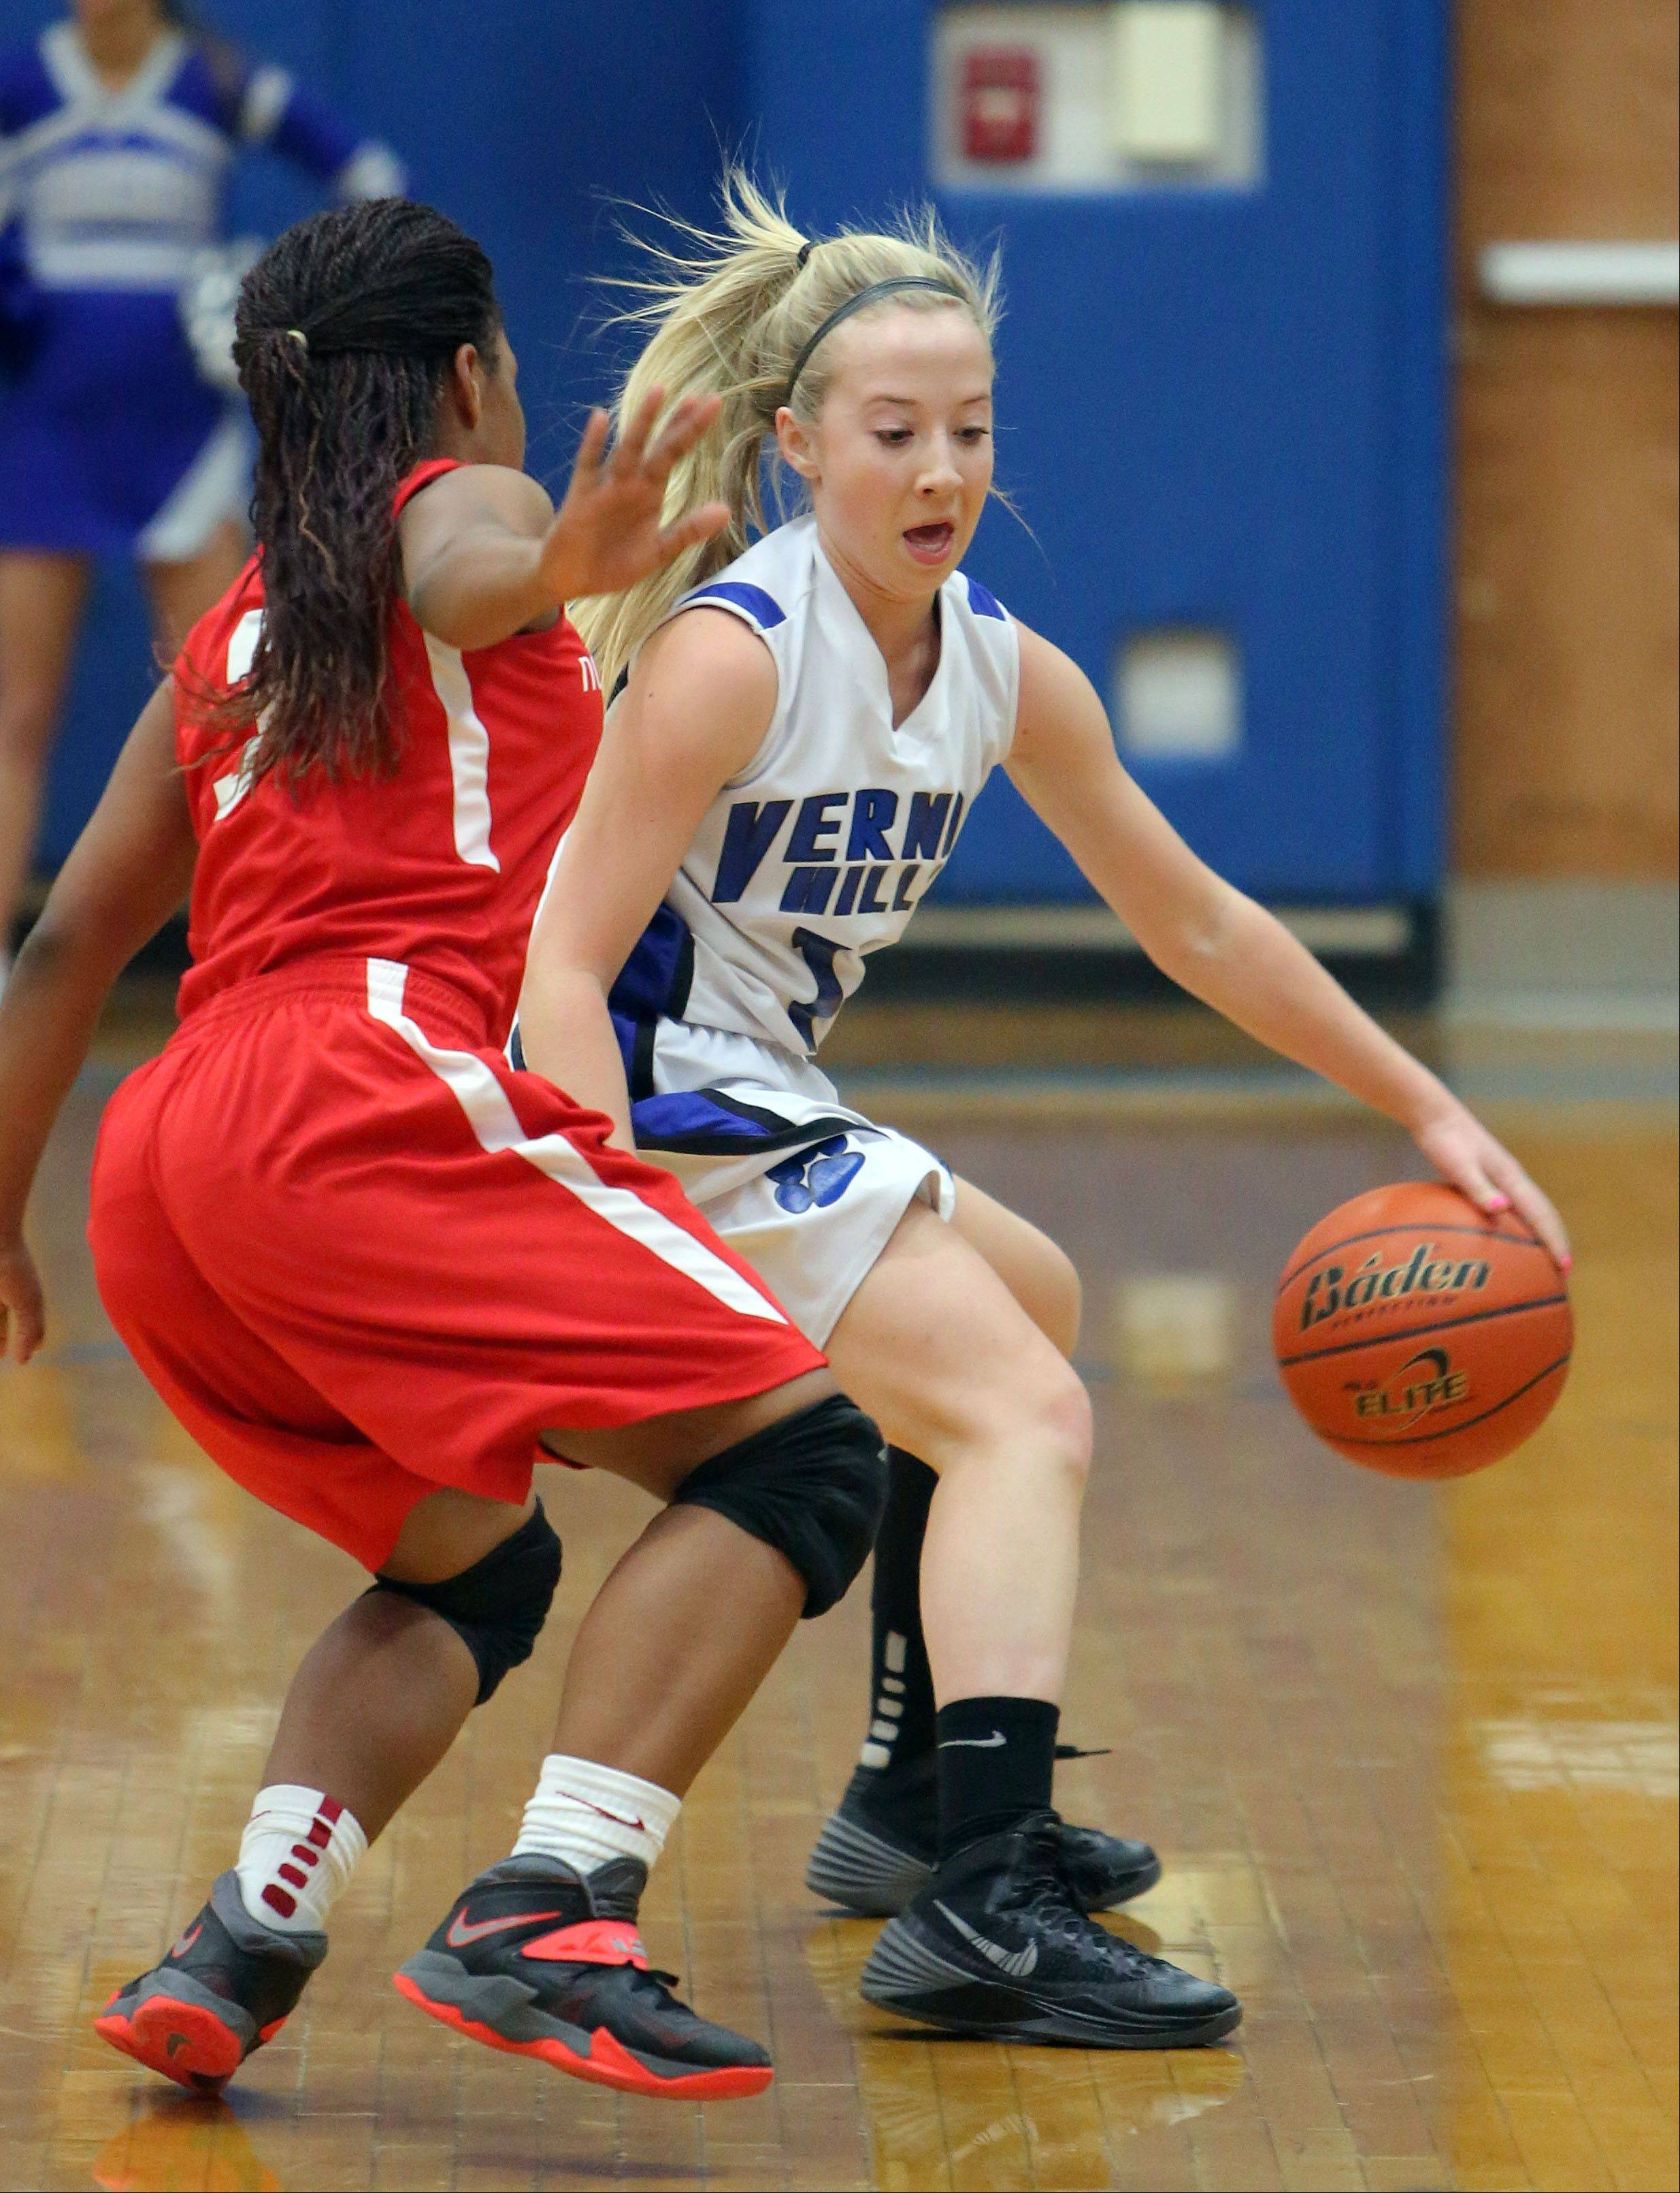 Vernon Hills' Haley Lieberman, right, drives on North Chicago's Alexis Means on Wednesday at Vernon Hills.